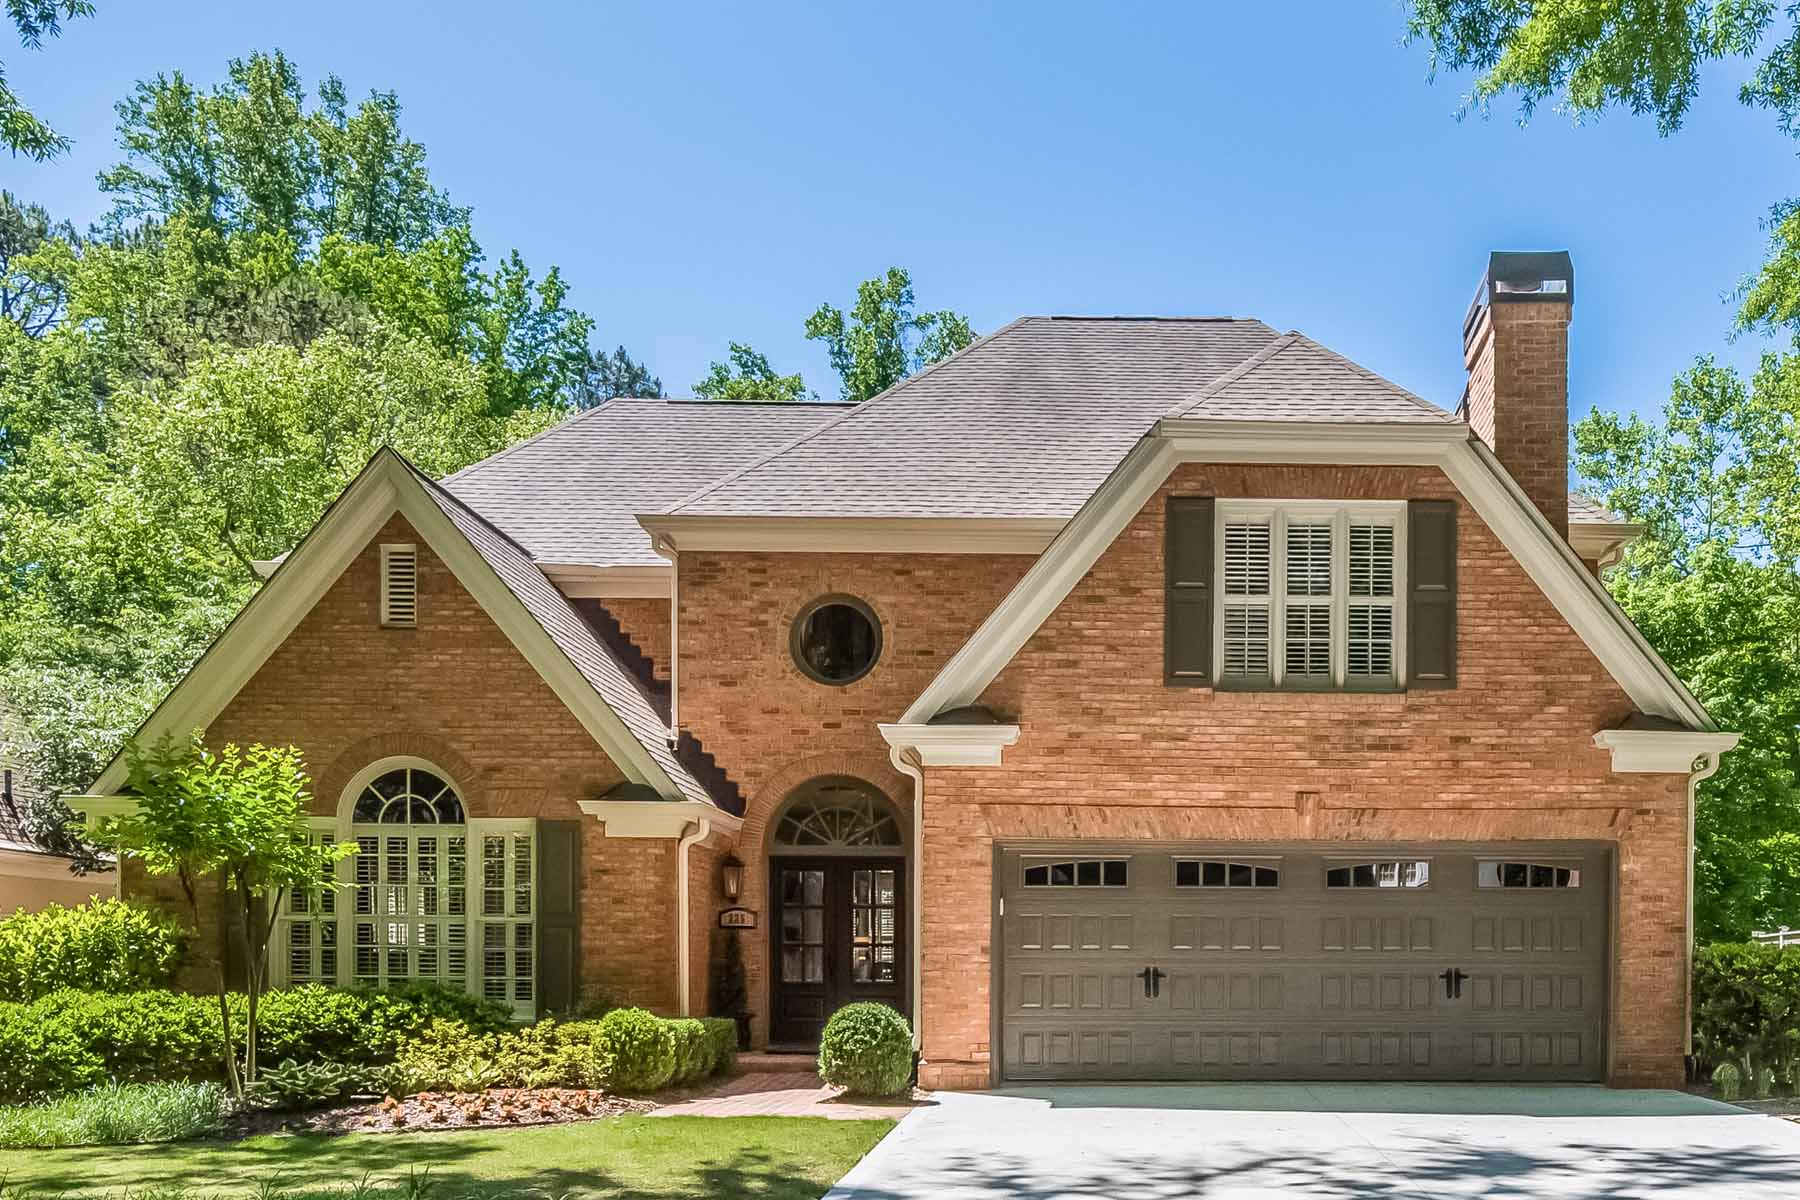 Casa Unifamiliar por un Venta en Private Luxurious Retreat just Minutes to Buckhead, Brookhaven and Sandy Springs 225 Woodchase Close NE Atlanta, Georgia, 30319 Estados Unidos